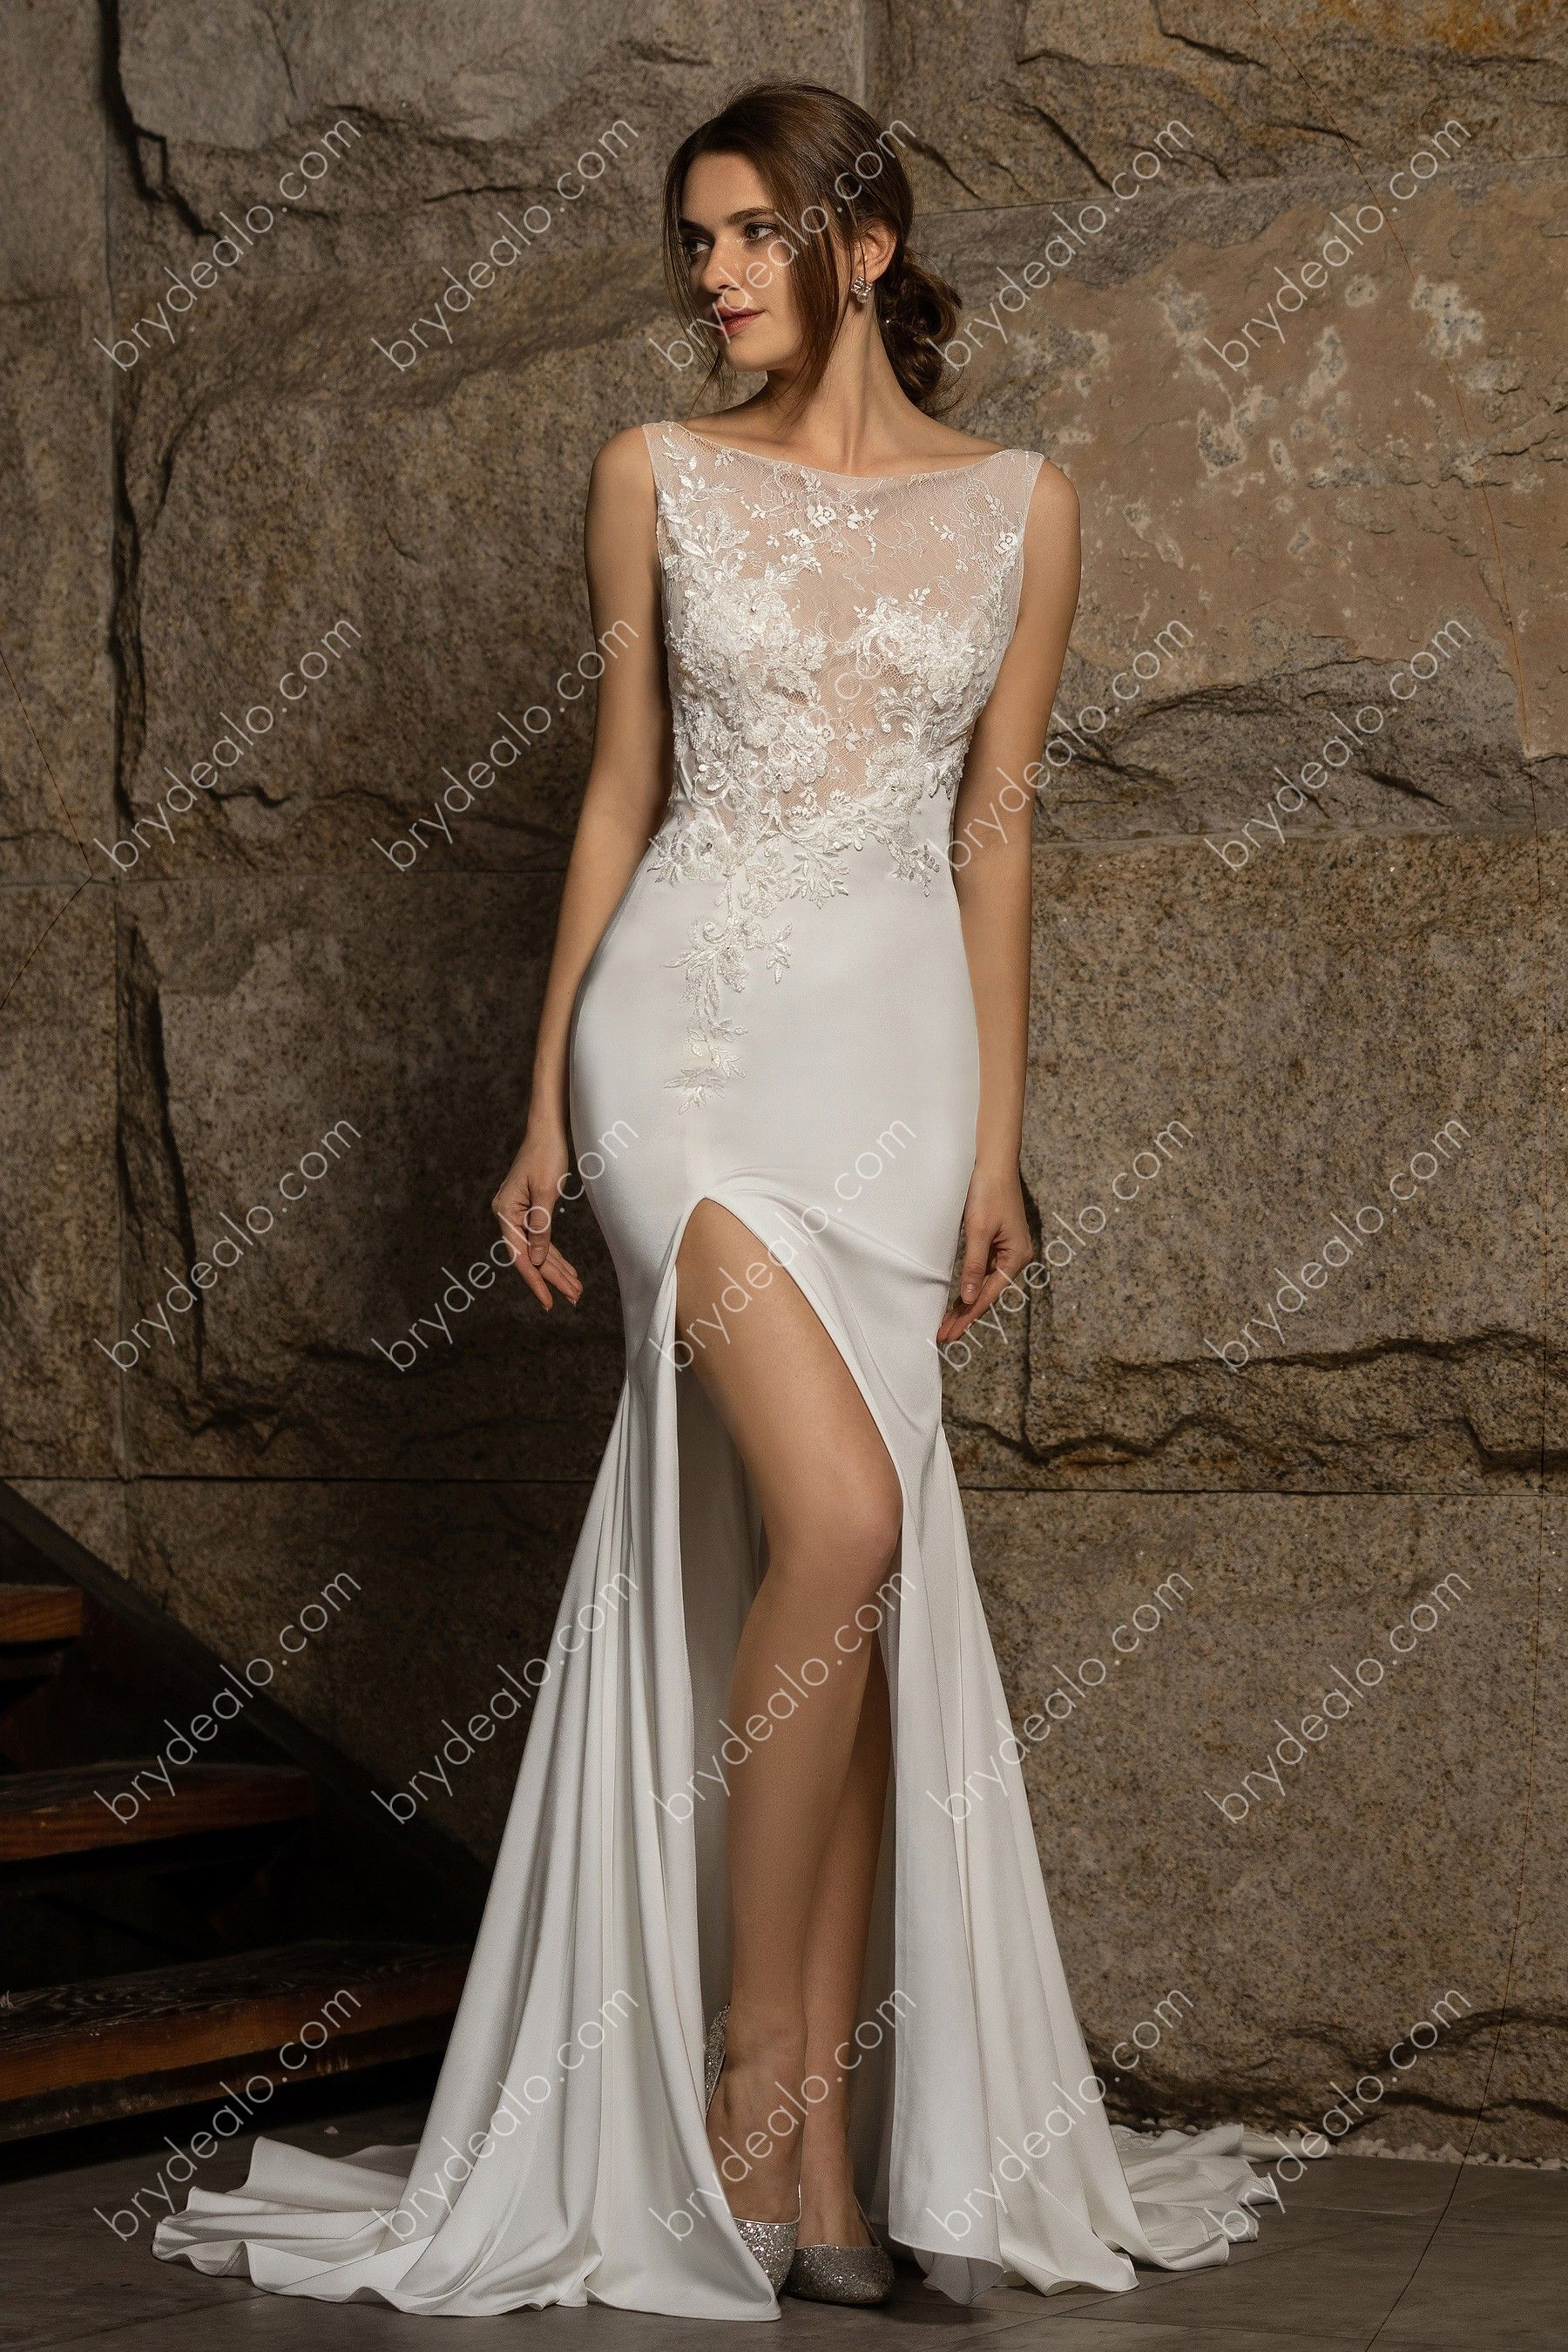 Finest Beaded Appliques Dance From Illusion Bodice Stopping Just Below The Waistline With Asymme Bridal Gowns Mermaid Satin Mermaid Wedding Dress Bridal Gowns [ 2700 x 1800 Pixel ]